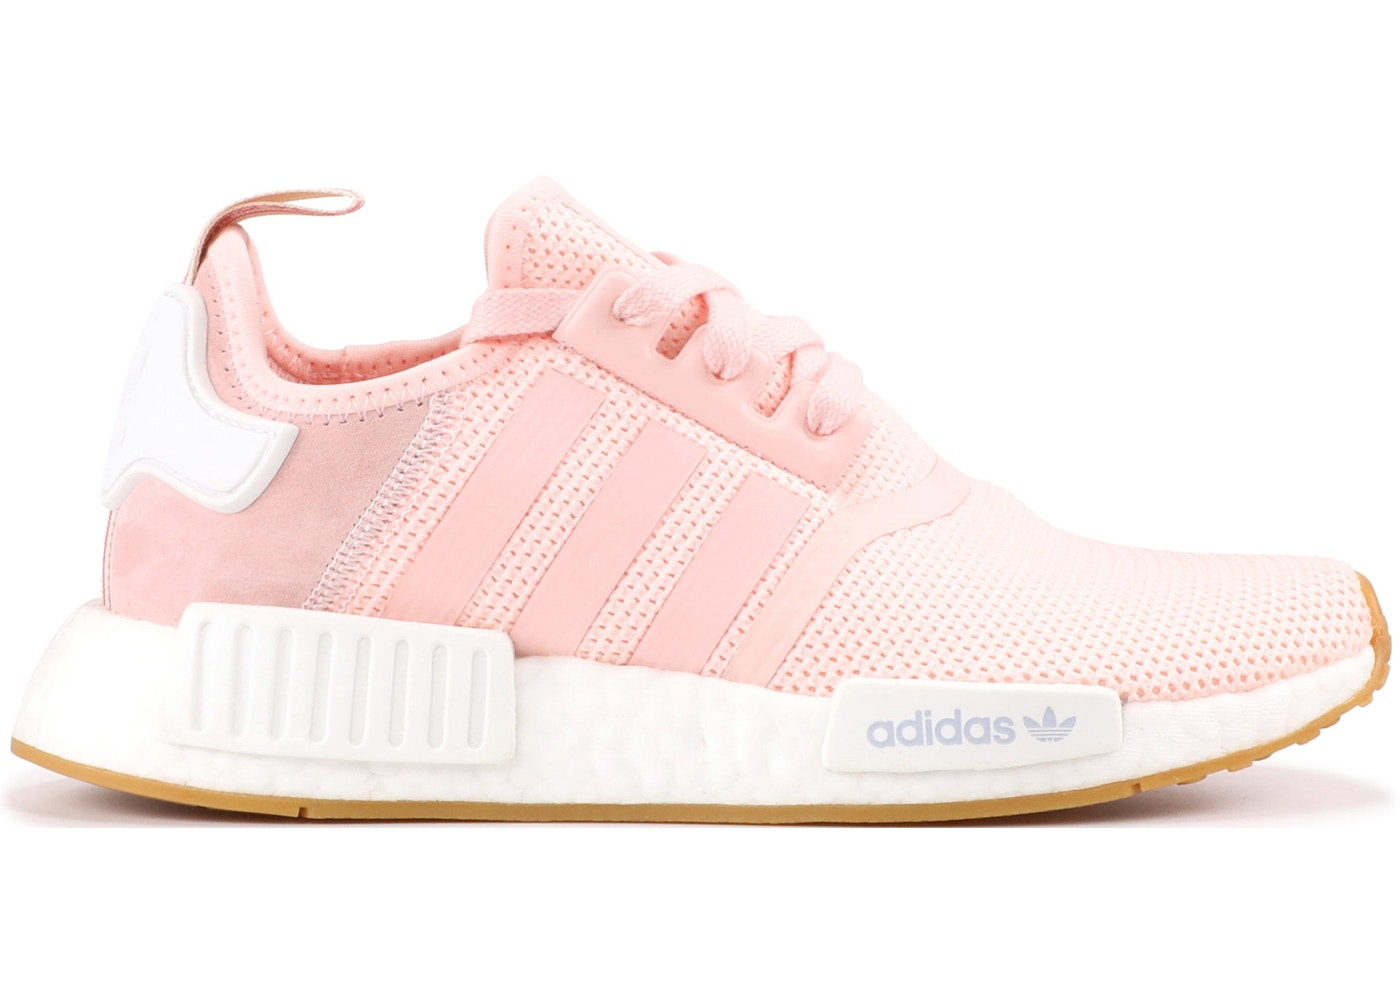 Adidas Nmd R1 Footwear White Pink WomenS Running Trainers